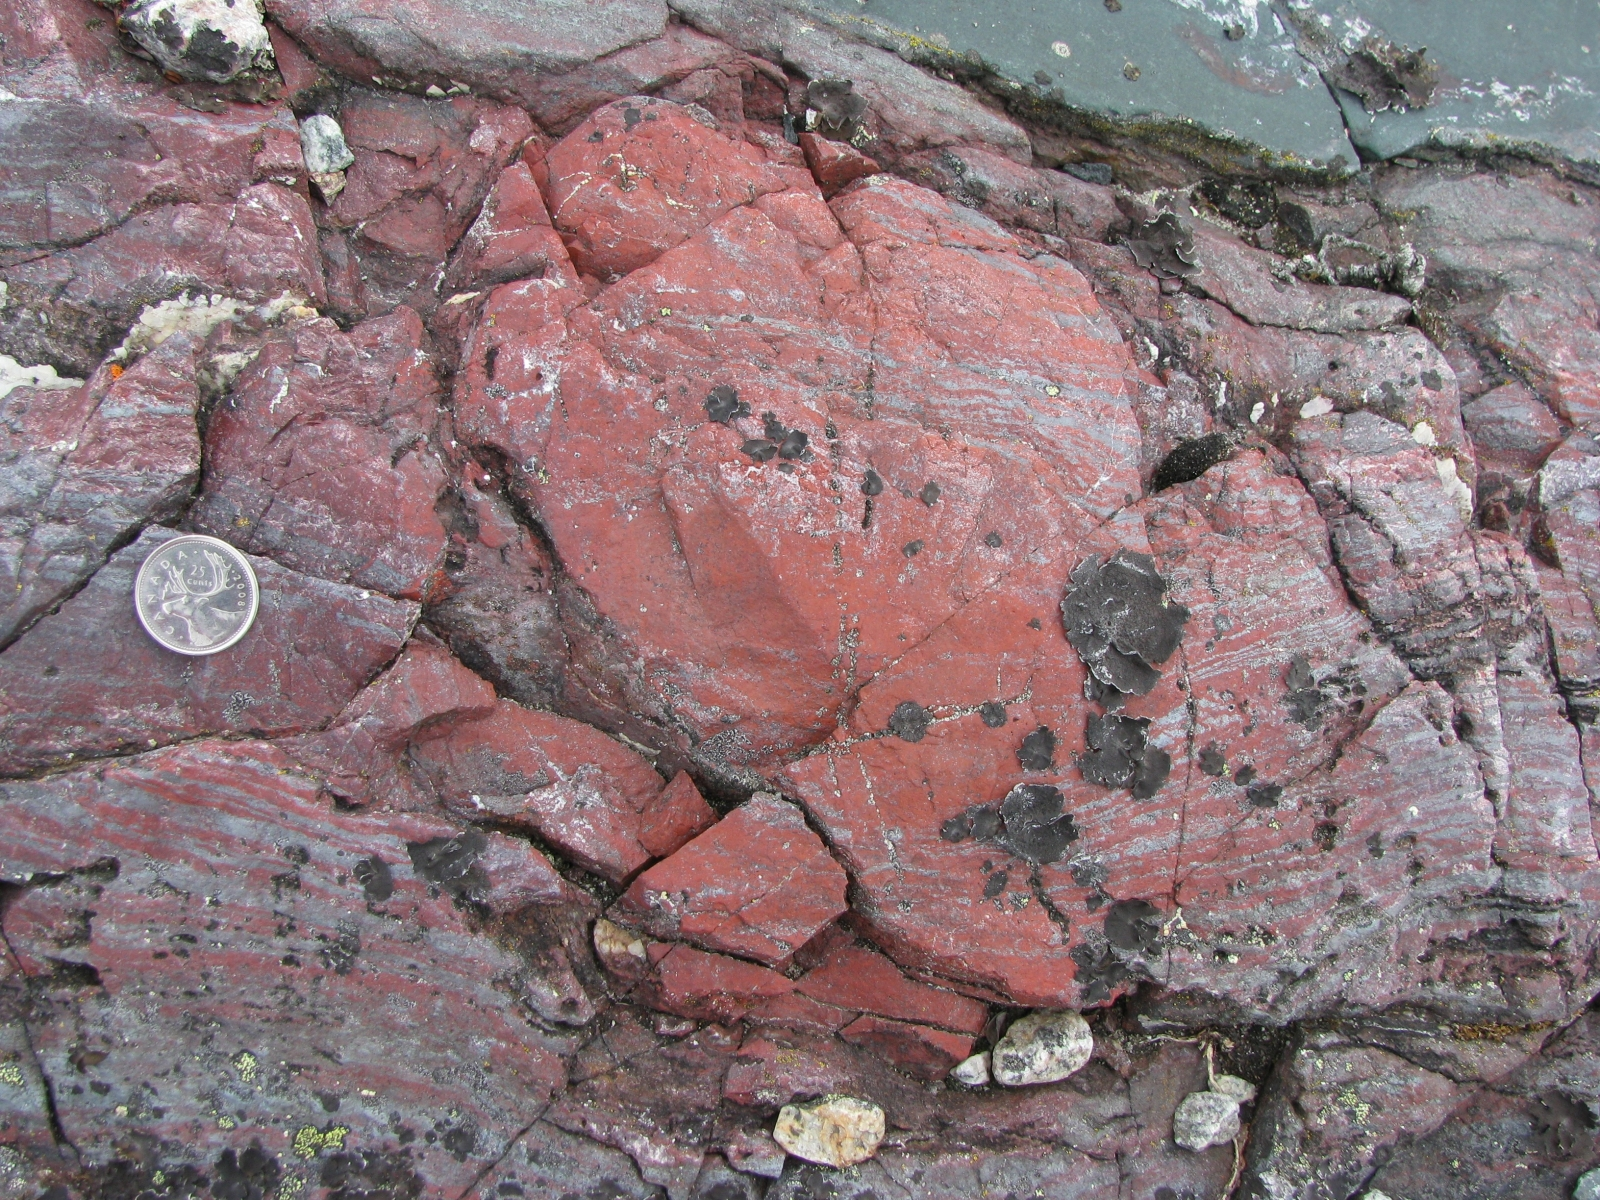 Traces in rock may be the oldest evidence of life on Earth ever